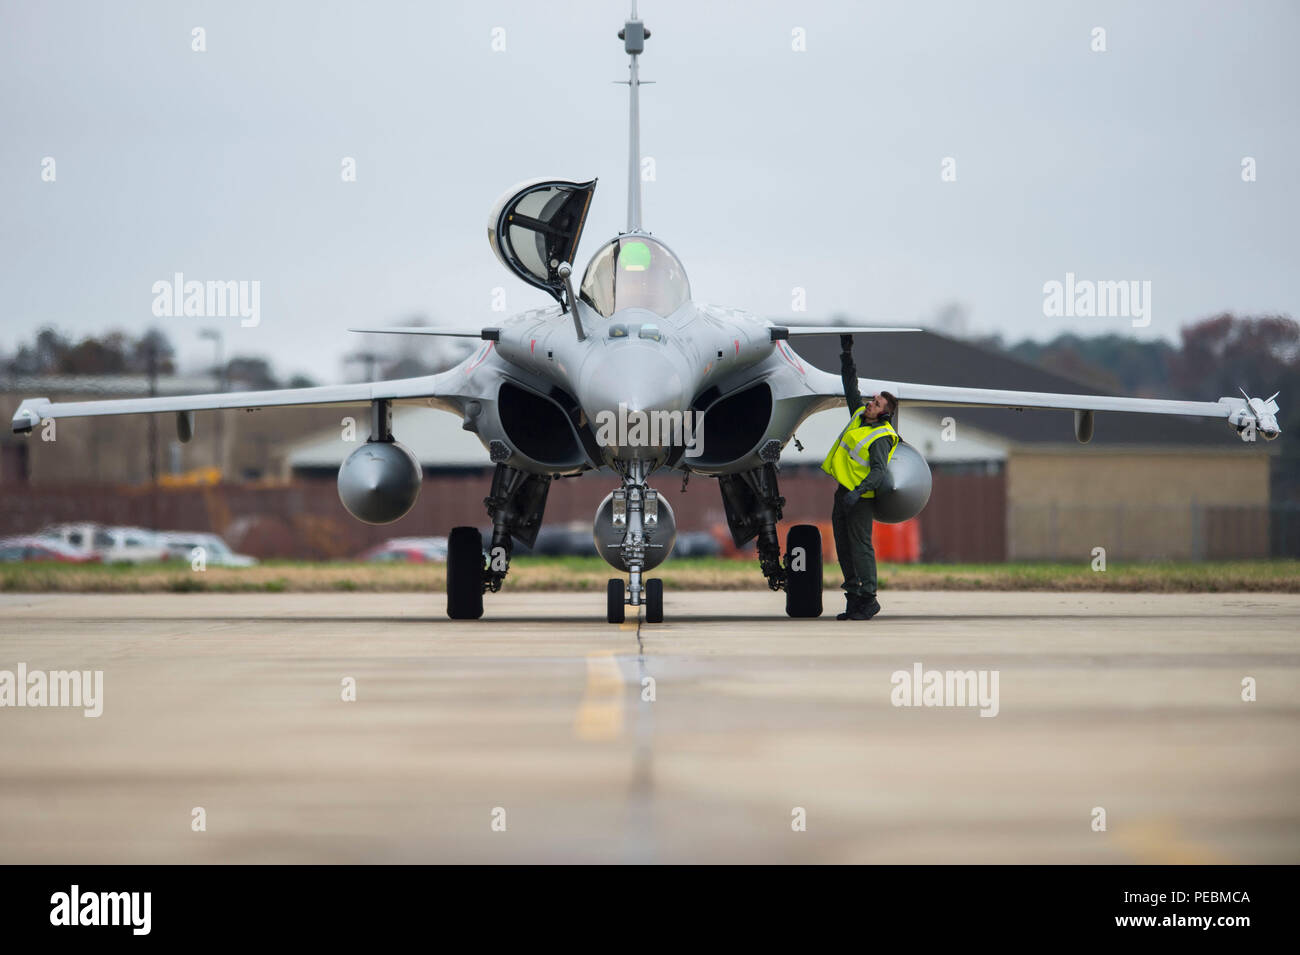 A French Air Force (FrAF) Dassault Rafale arrives for the